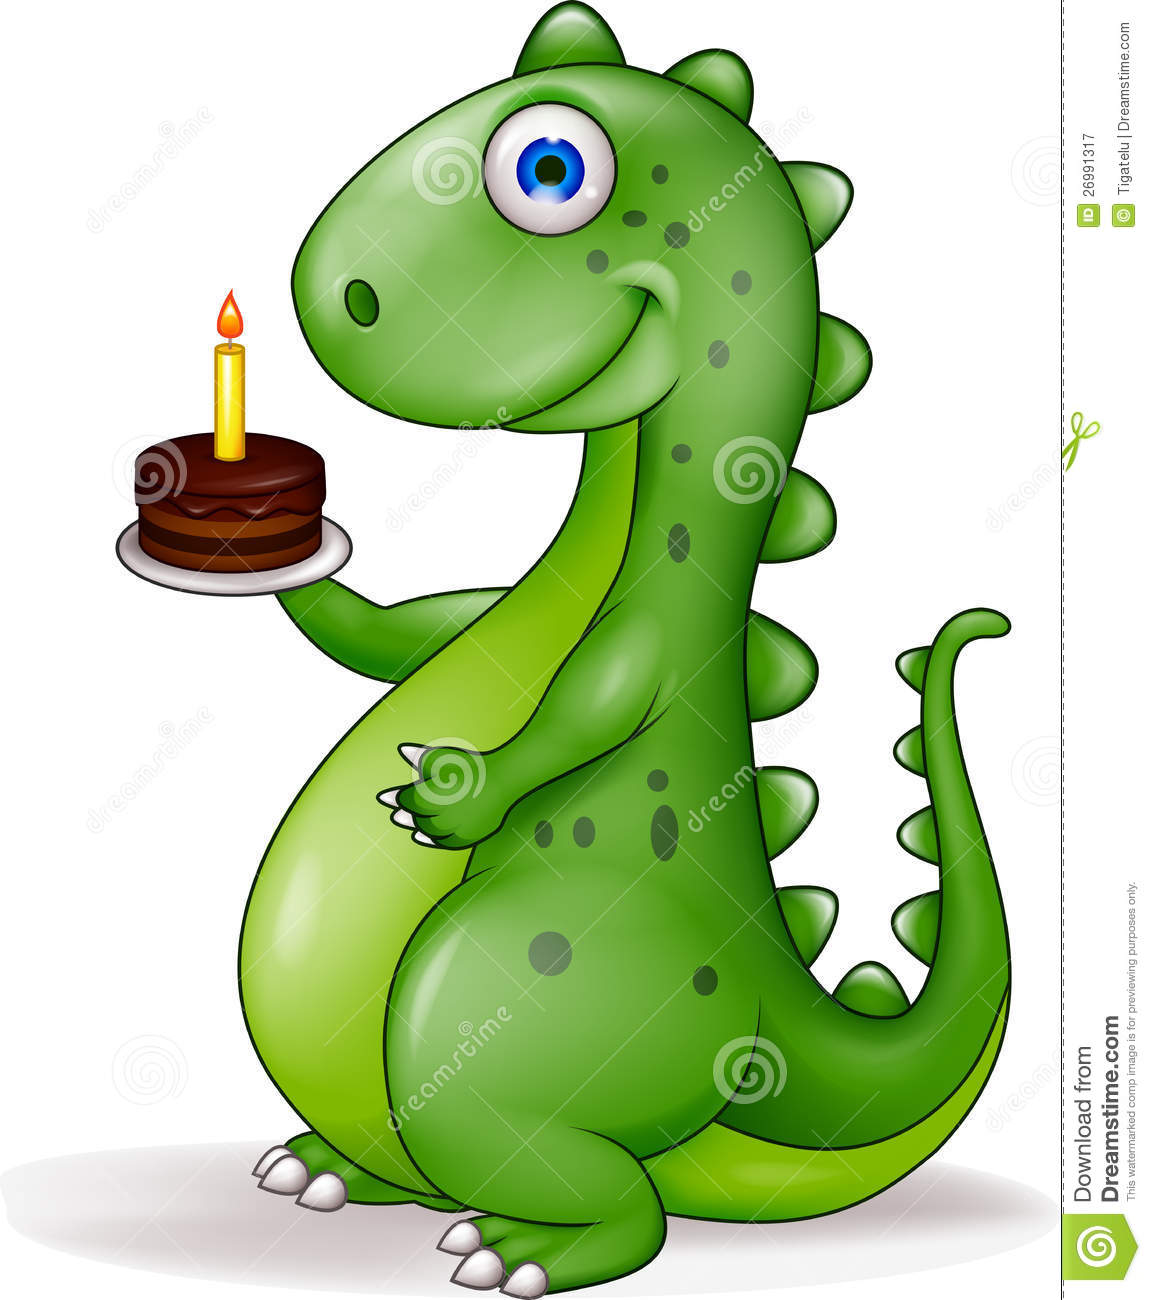 Remarkable Dinosaur With Birthday Cake Stock Vector Illustration Of Personalised Birthday Cards Sponlily Jamesorg